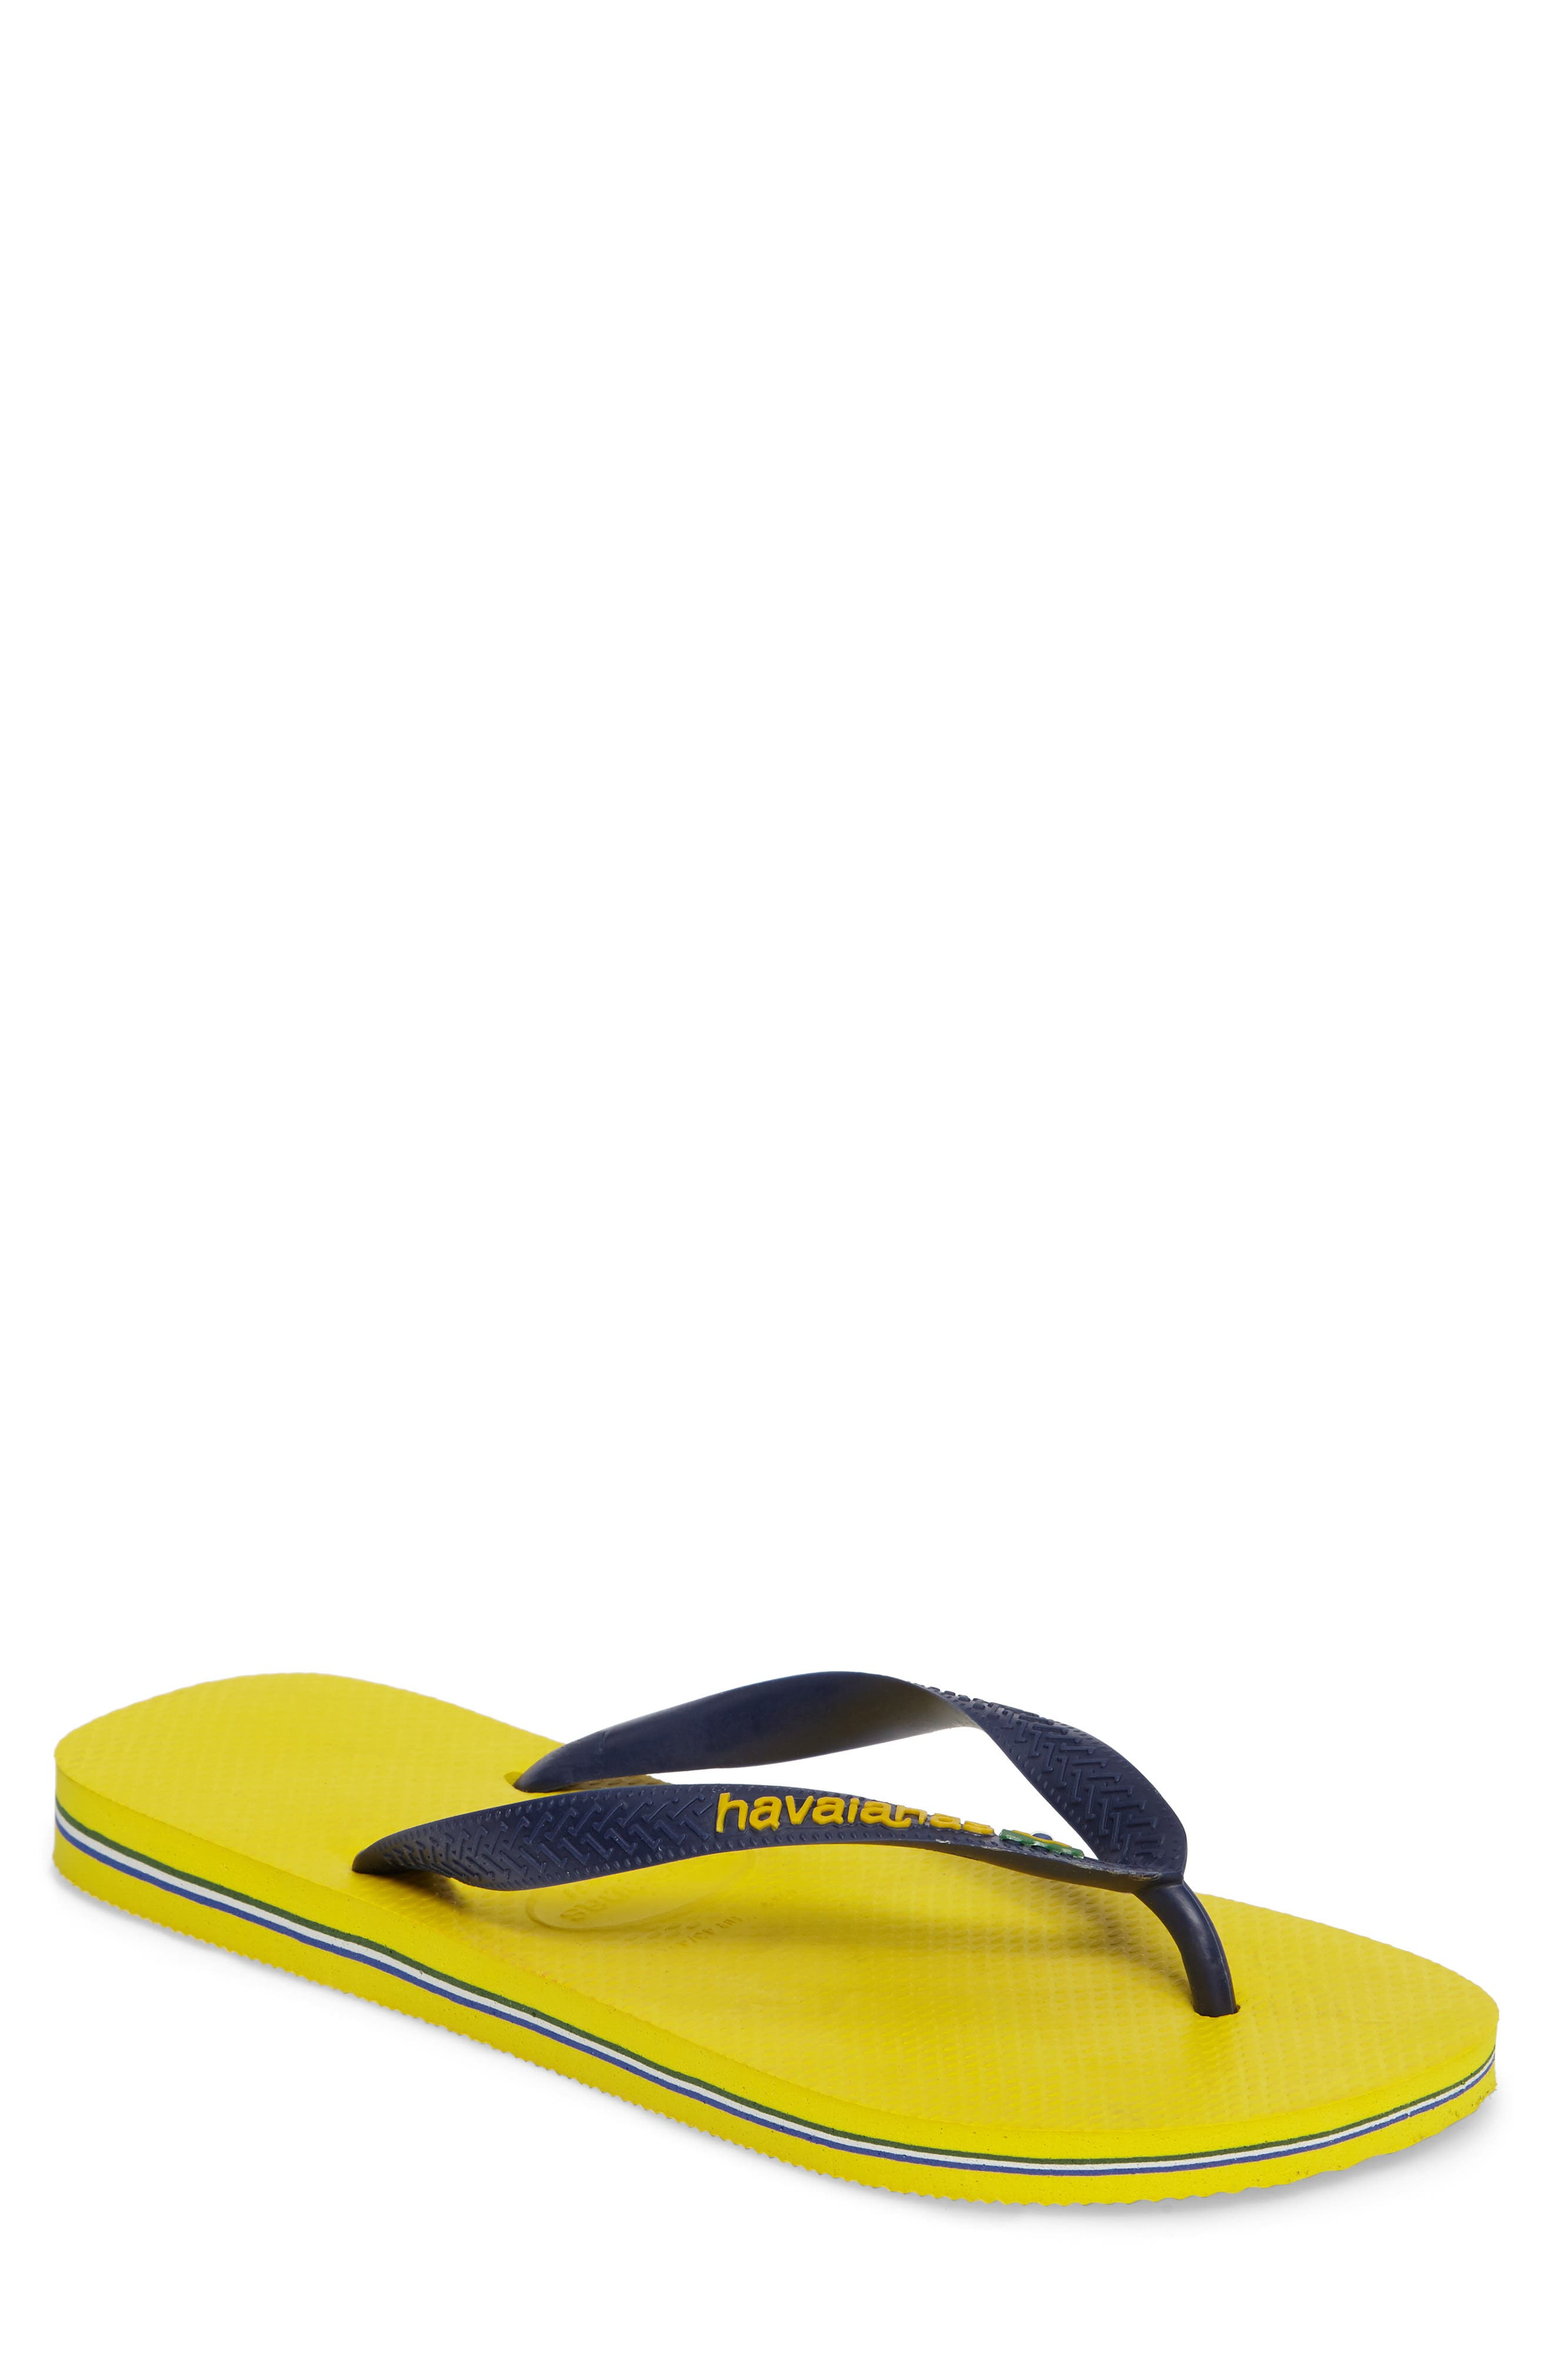 Alternate Image 1 Selected - Havaianas 'Brazil' Flip Flop (Men)